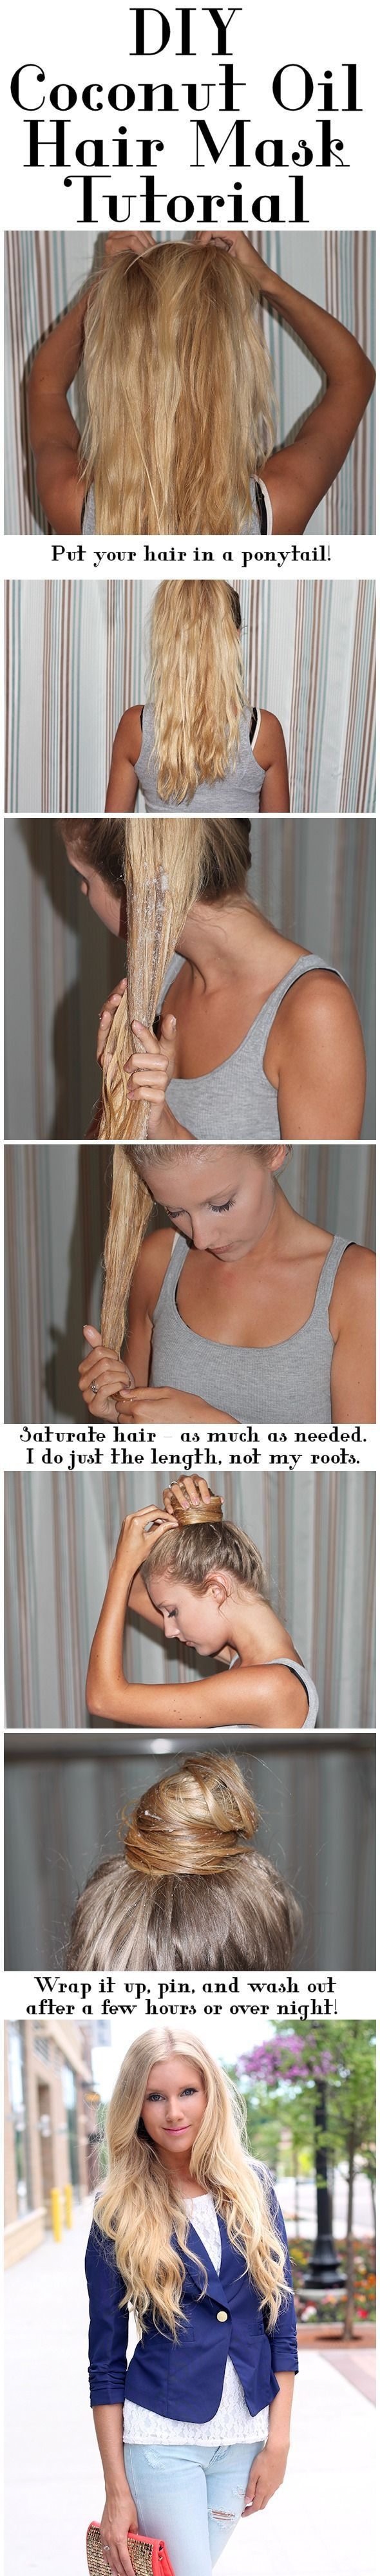 How To Grow Your Hair Faster 1 To 2 Inches In Just 1 Week